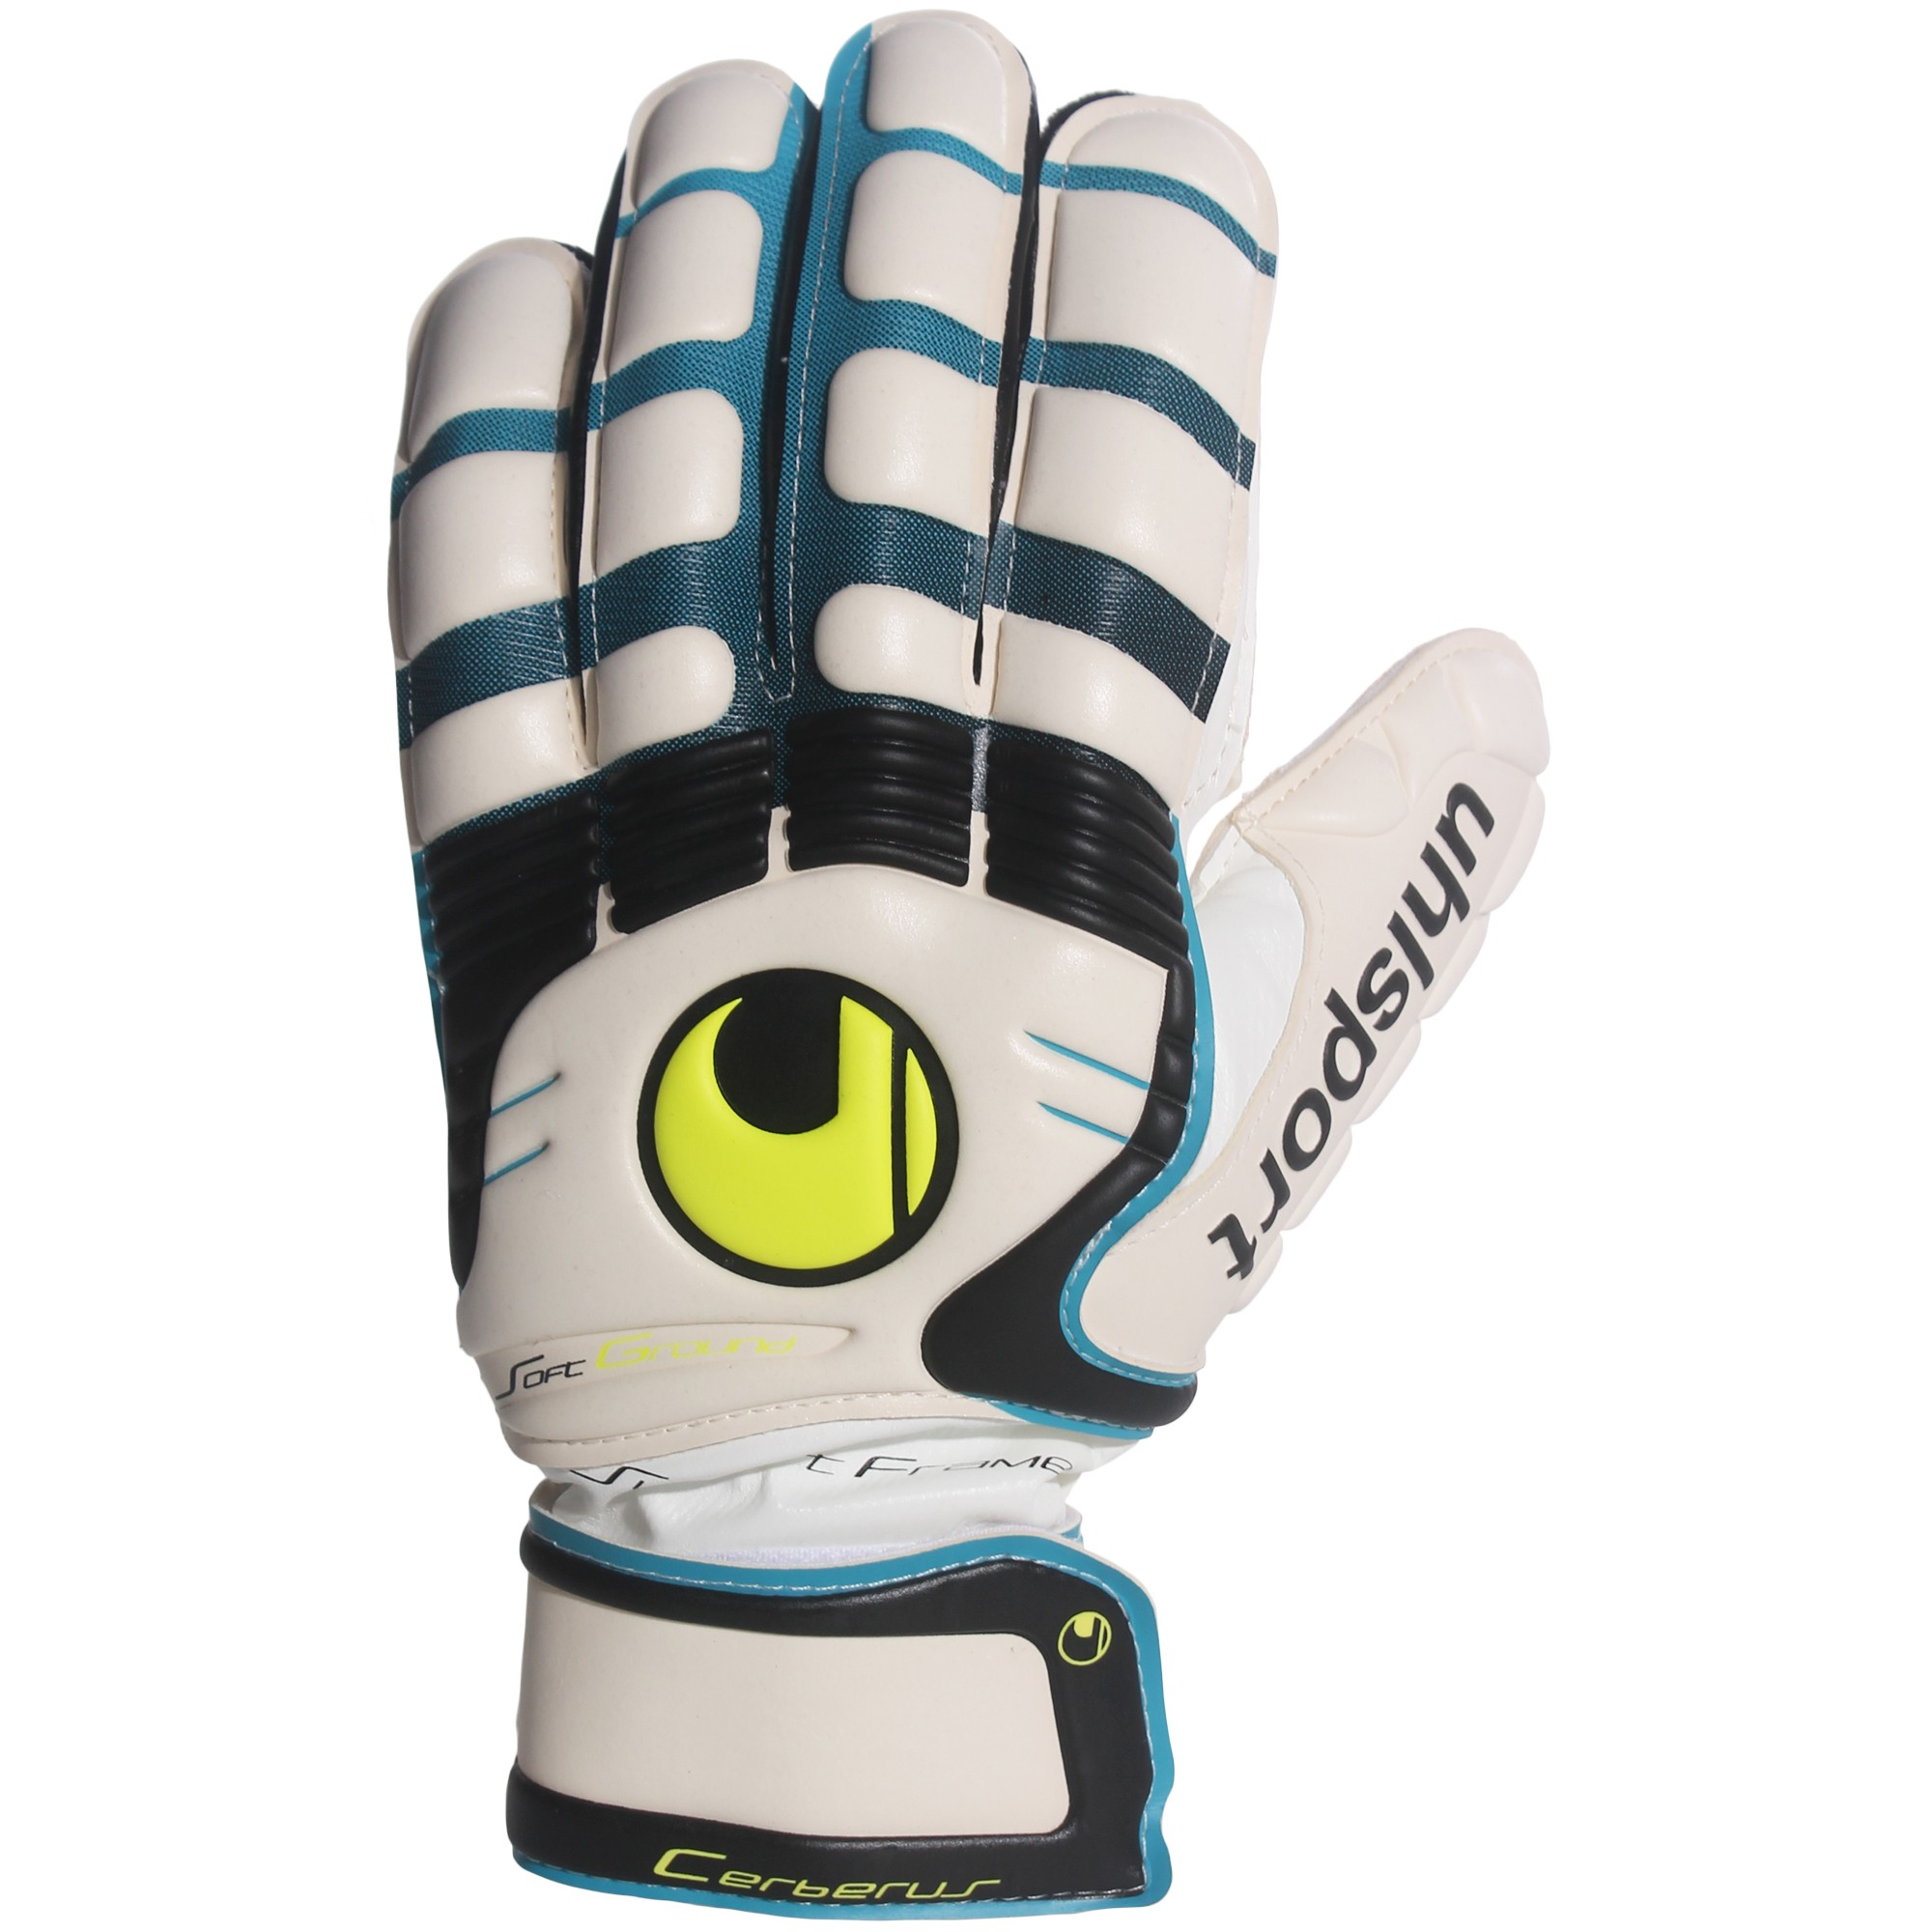 UHLSPORT Cerberus Soft SF